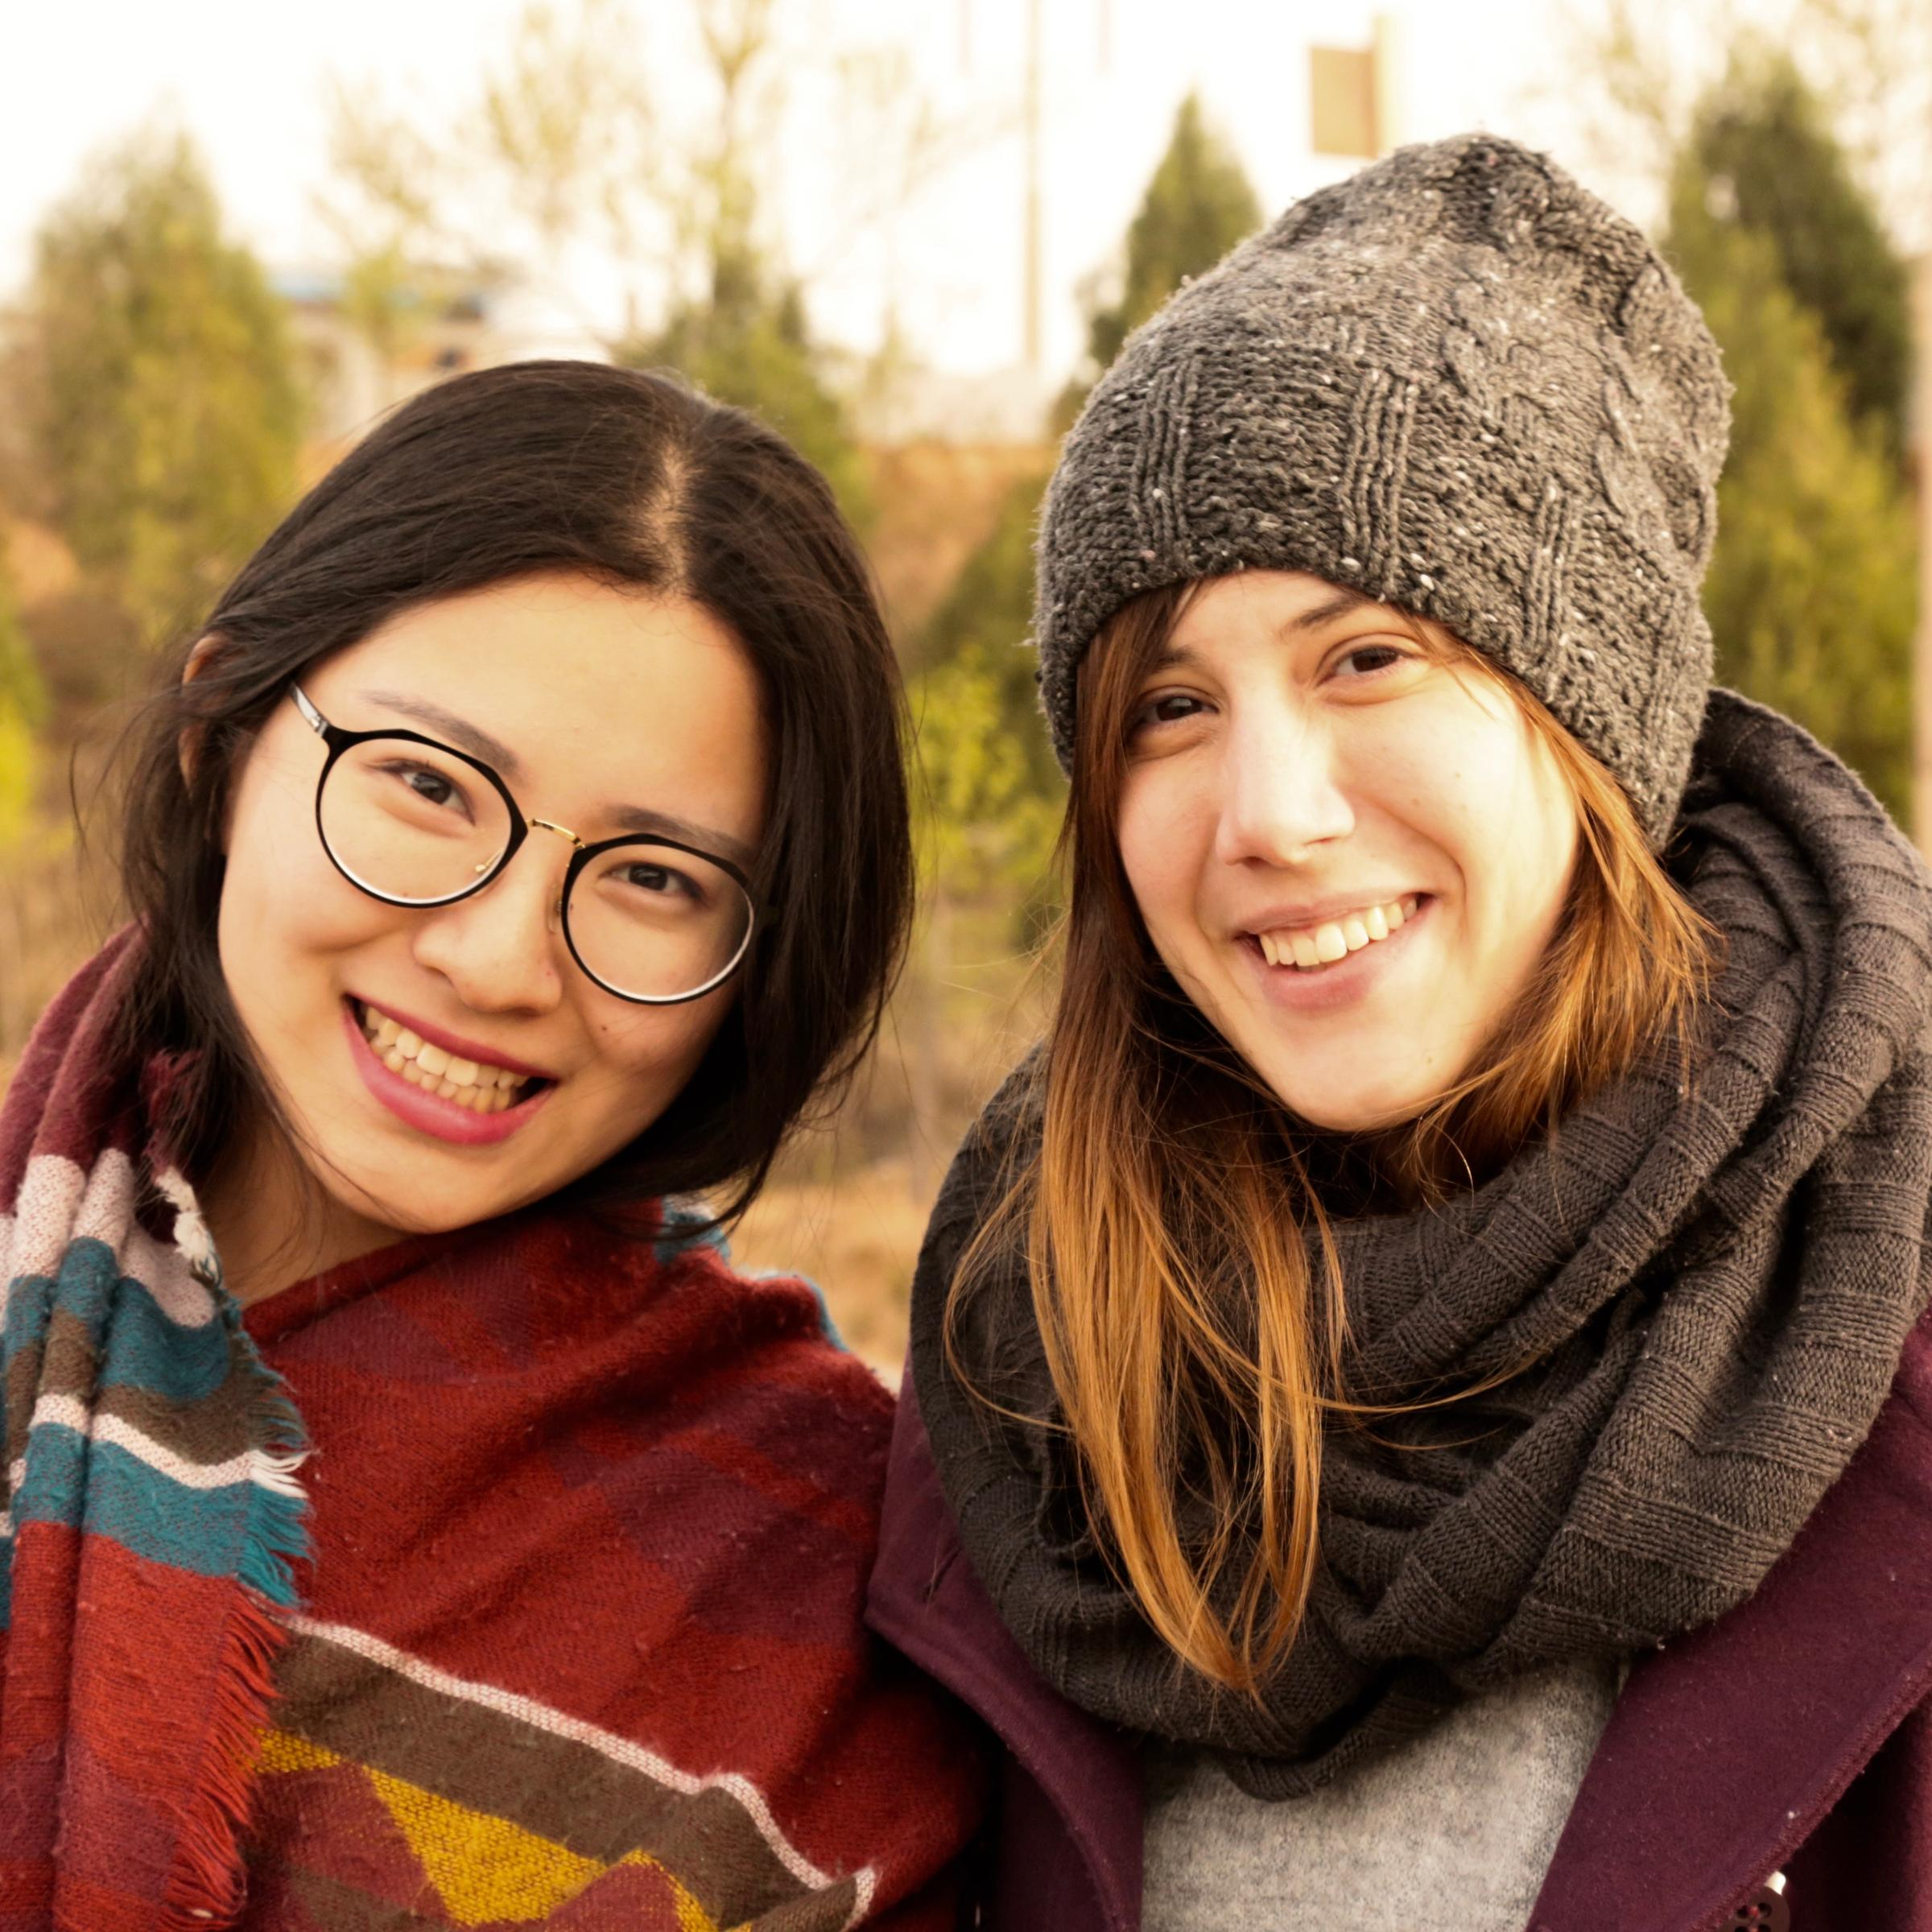 Two Xi'an university students share insights about their life in